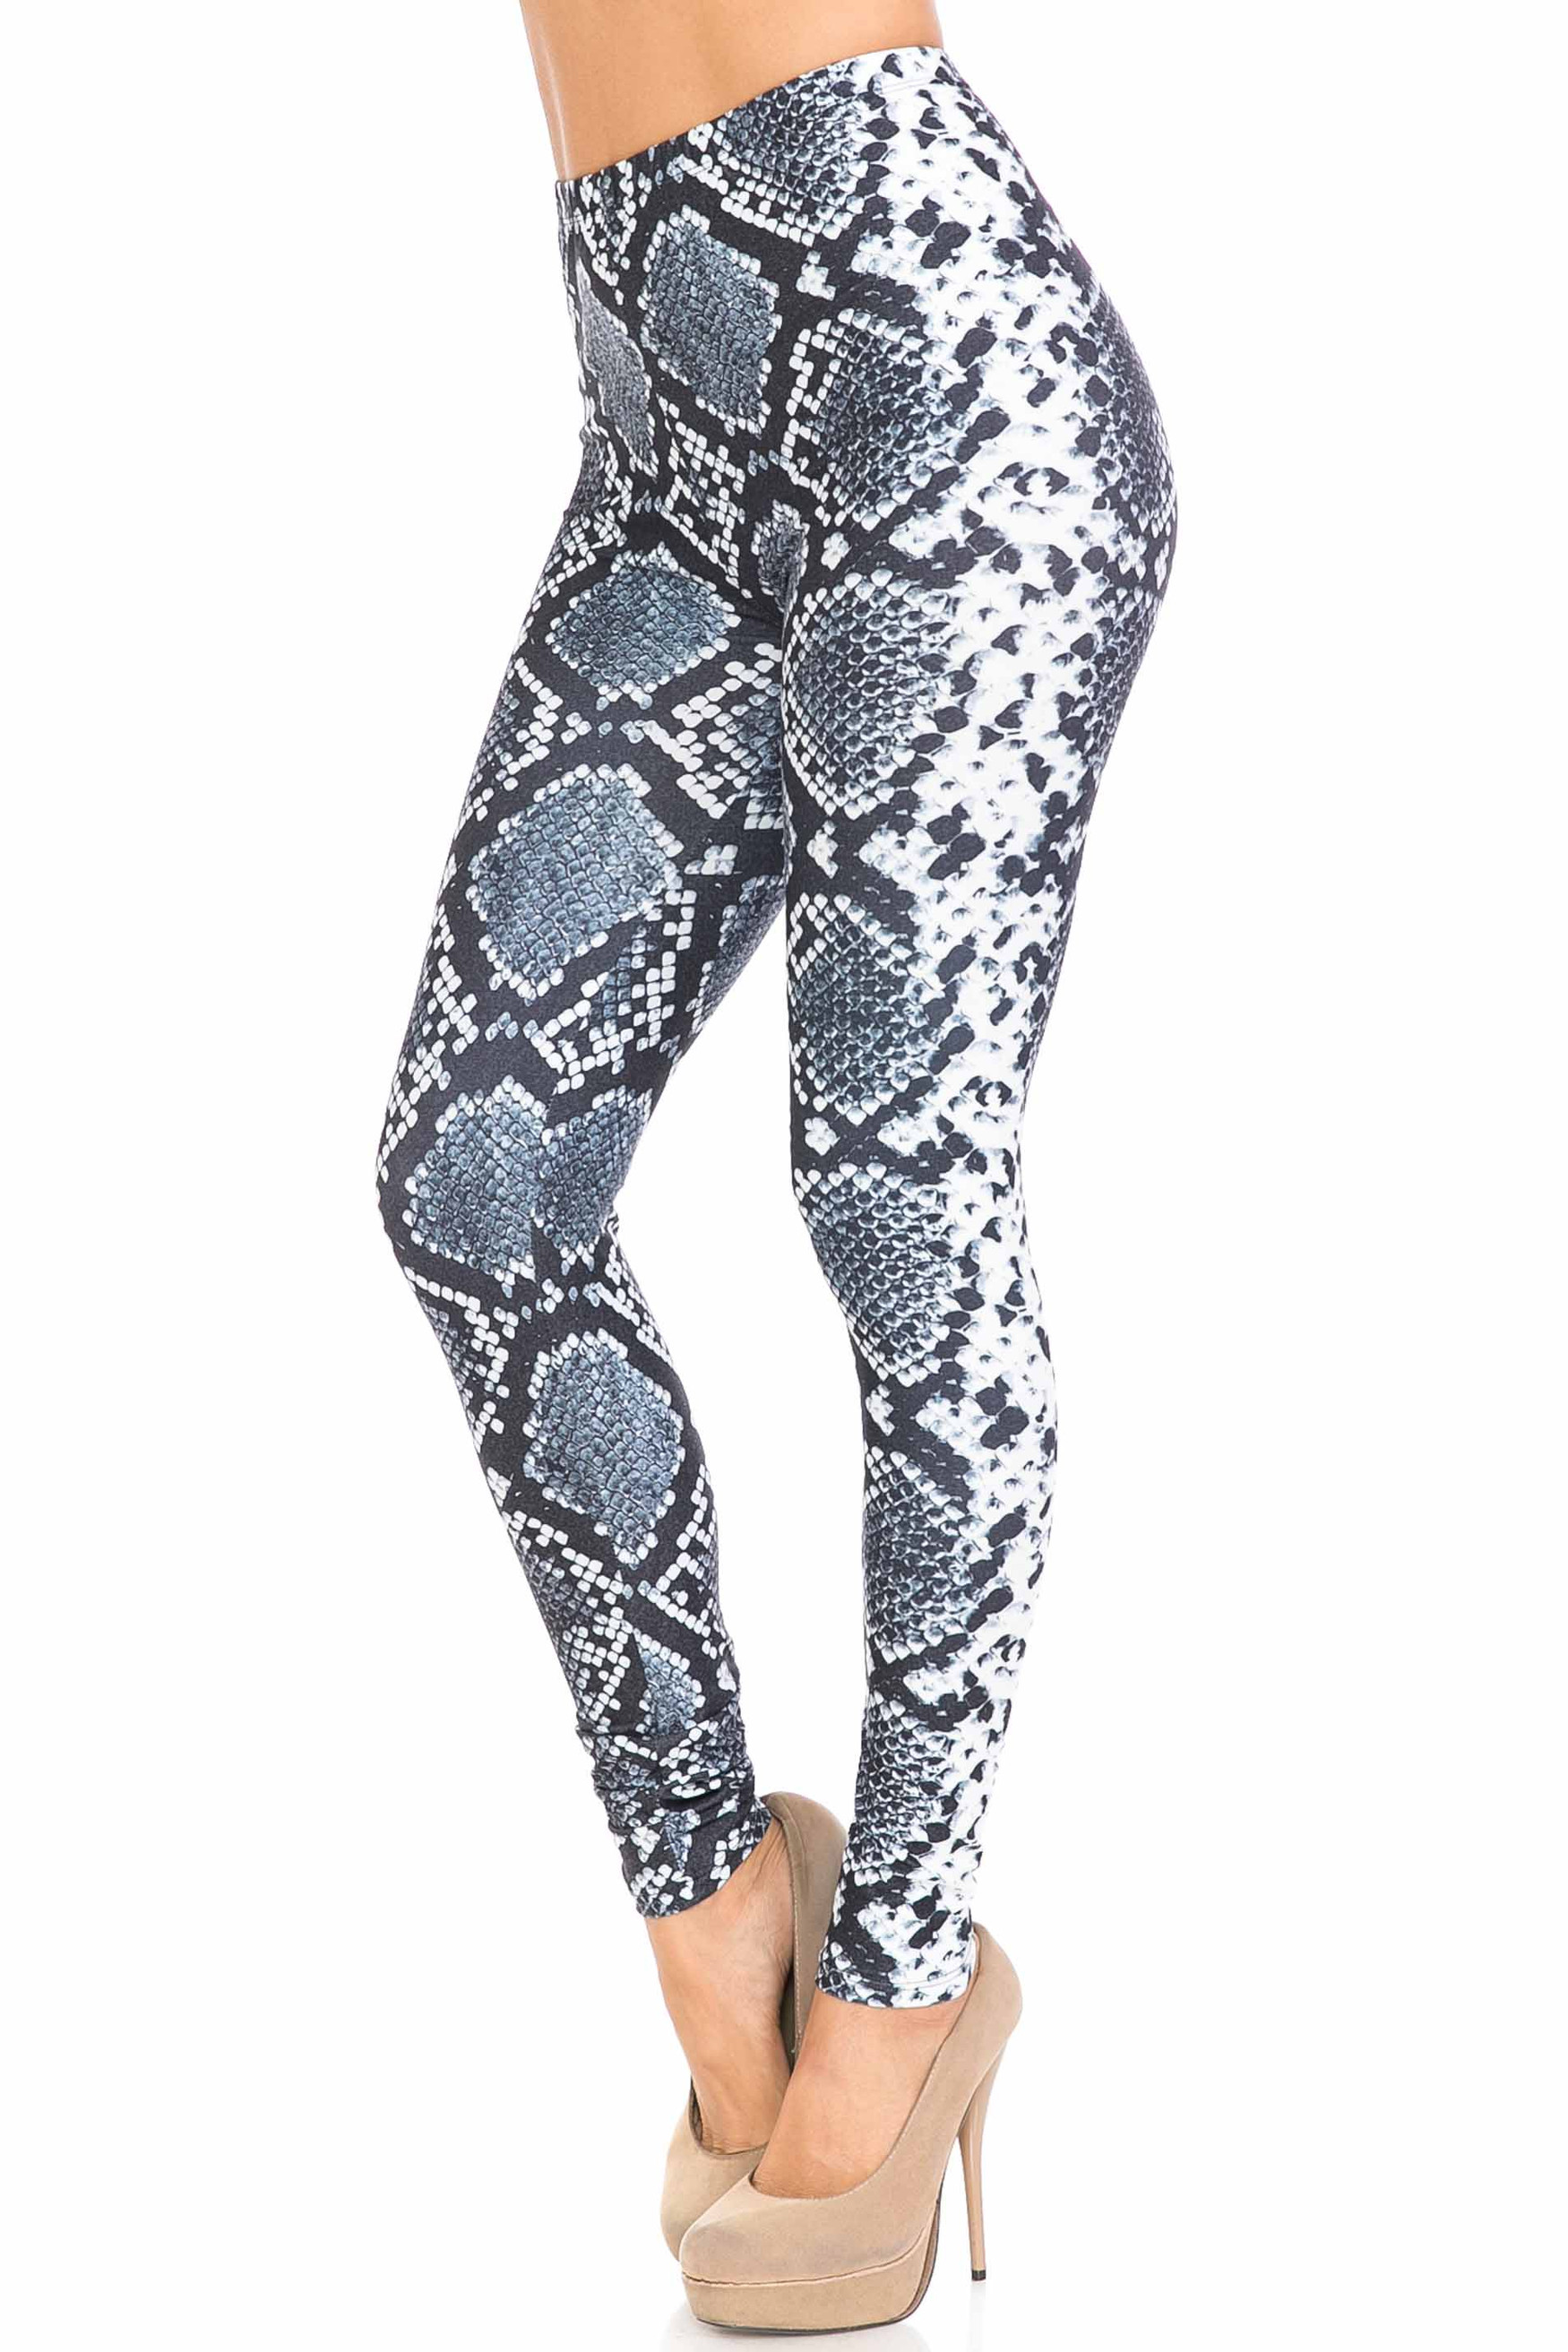 45 degree view of Creamy Soft Steel Blue Boa Extra Plus Size Leggings - 3X-5X - USA Fashion™ with a cool edgy snakeskin look.